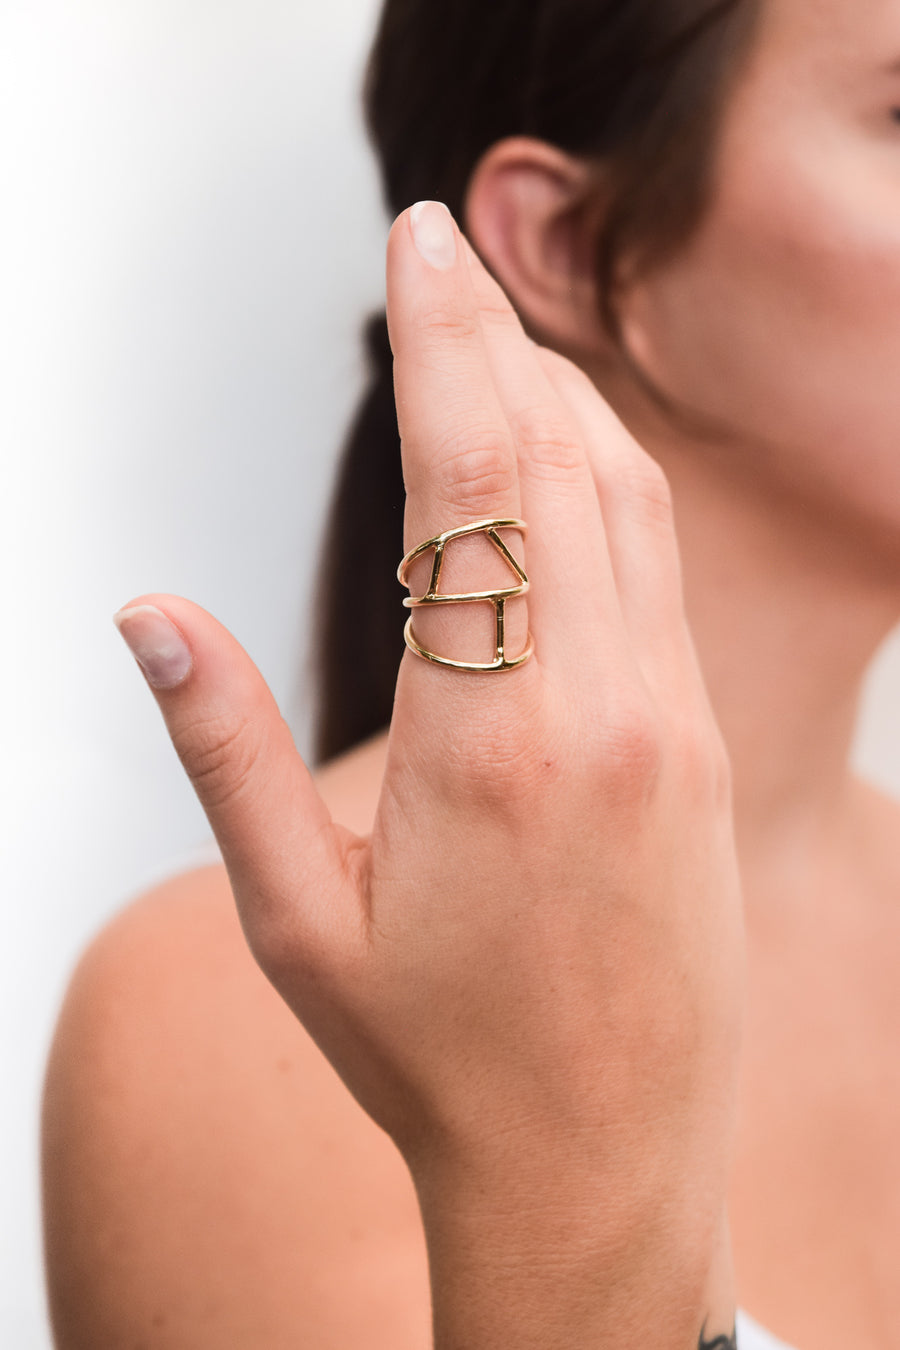 Fragment ring on model. 14k yellow gold ring with an asymmetrical design. Handmade by local jewelry designer, Nina Berenato, in Austin, Texas.